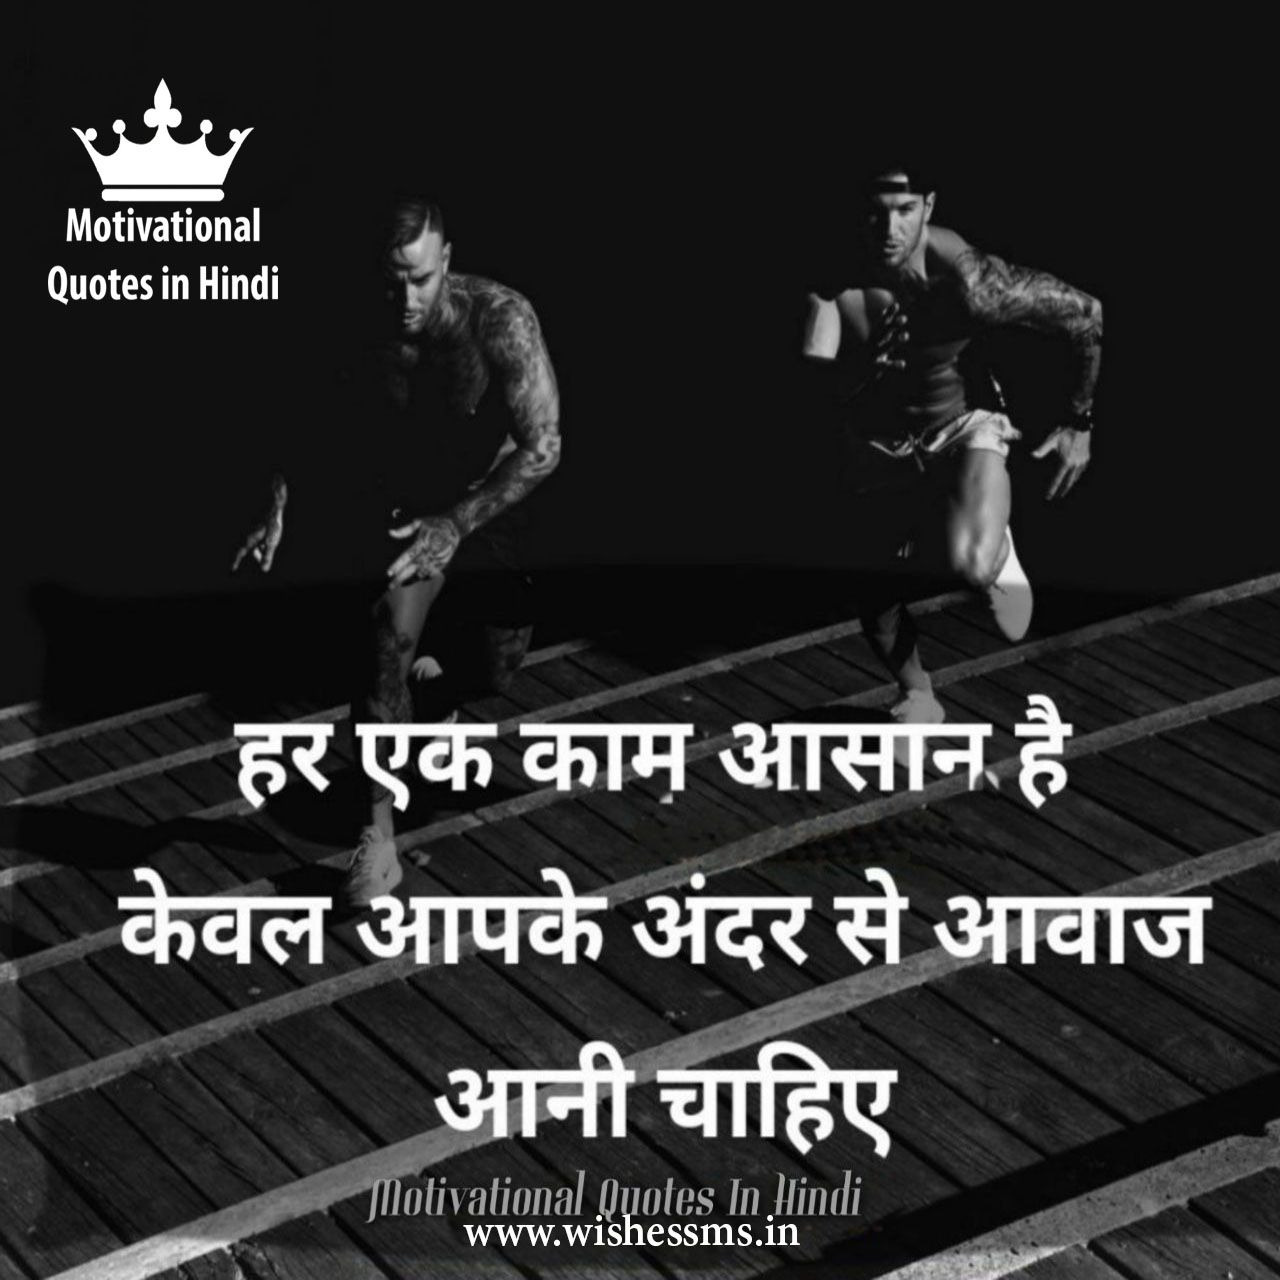 Motivational Quotes In Hindi For Student Motivational Quotes Motivational Pictures For Success Motivational Quotes For Students